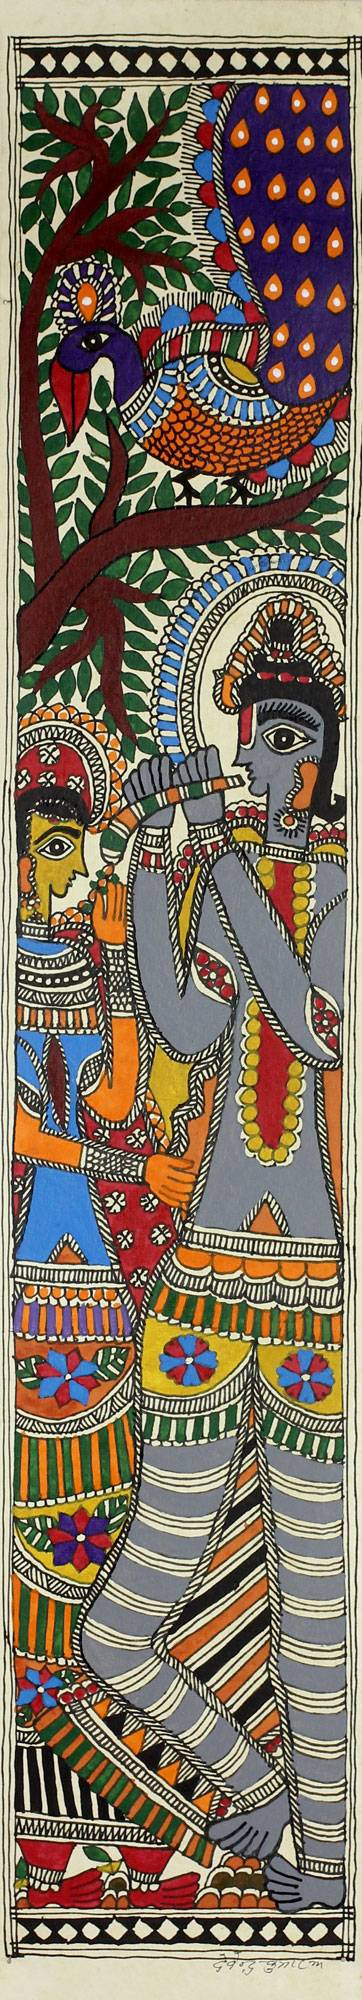 Original Signed Madhubani of Krishna and Radha